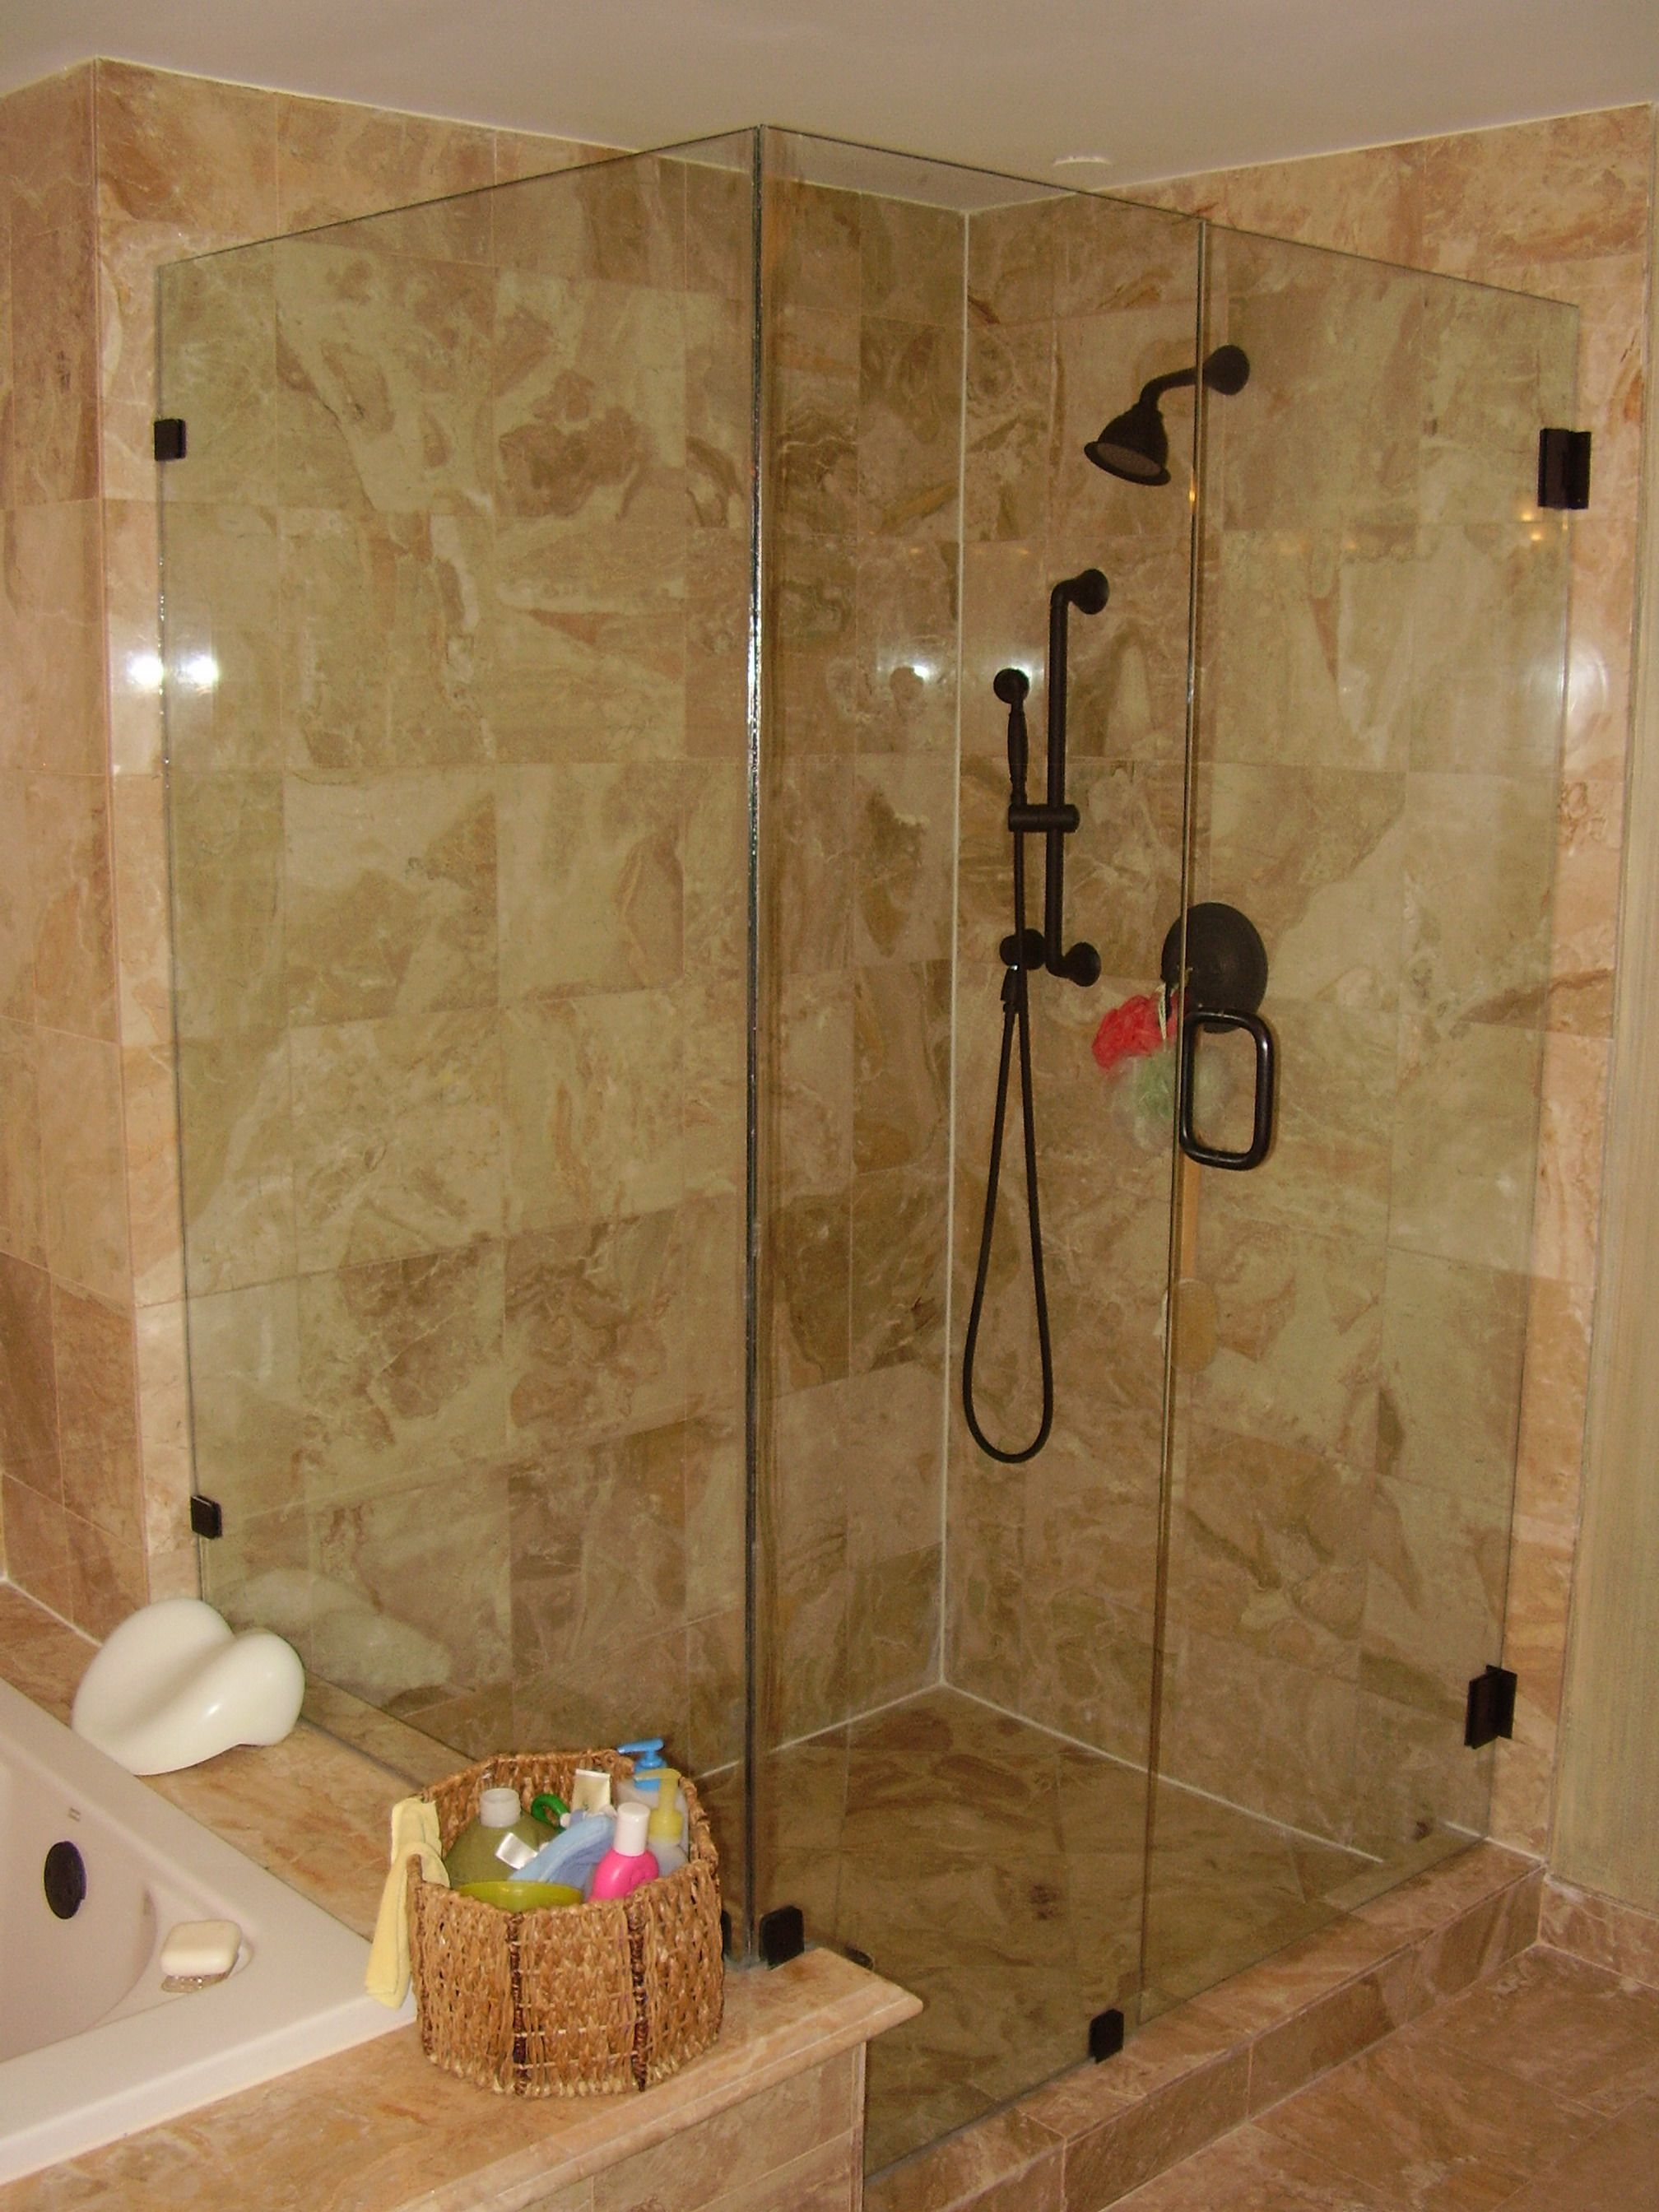 Bathrooms with glass showers | Bathroom Shower Enclosures ...